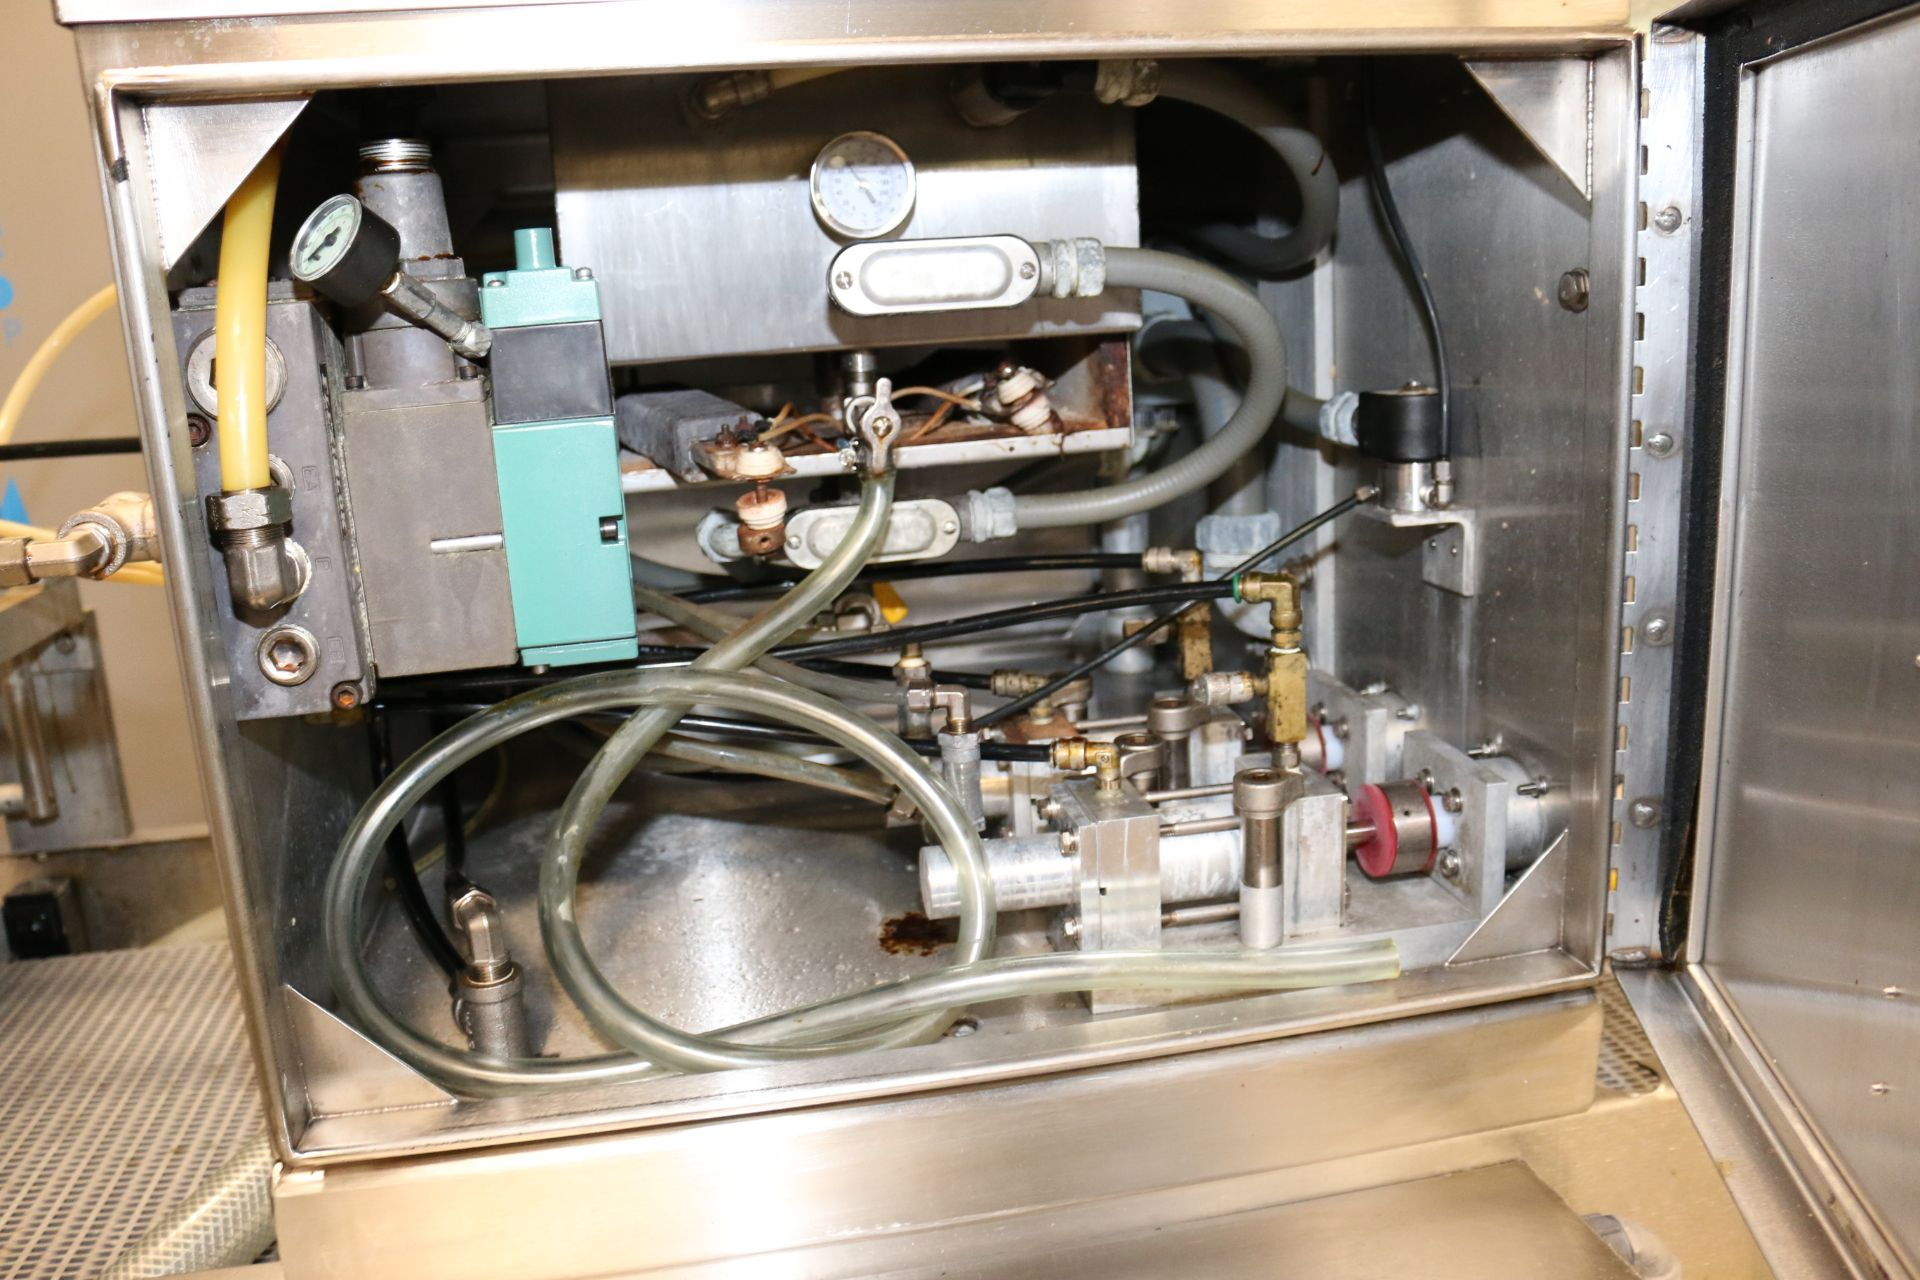 Lot 56 - Mallet S/S Cake Pan Greaser, M/N 400C-FT 91777, S/N 123-428, 460 Volts, 3 Phase, with Touchscreen